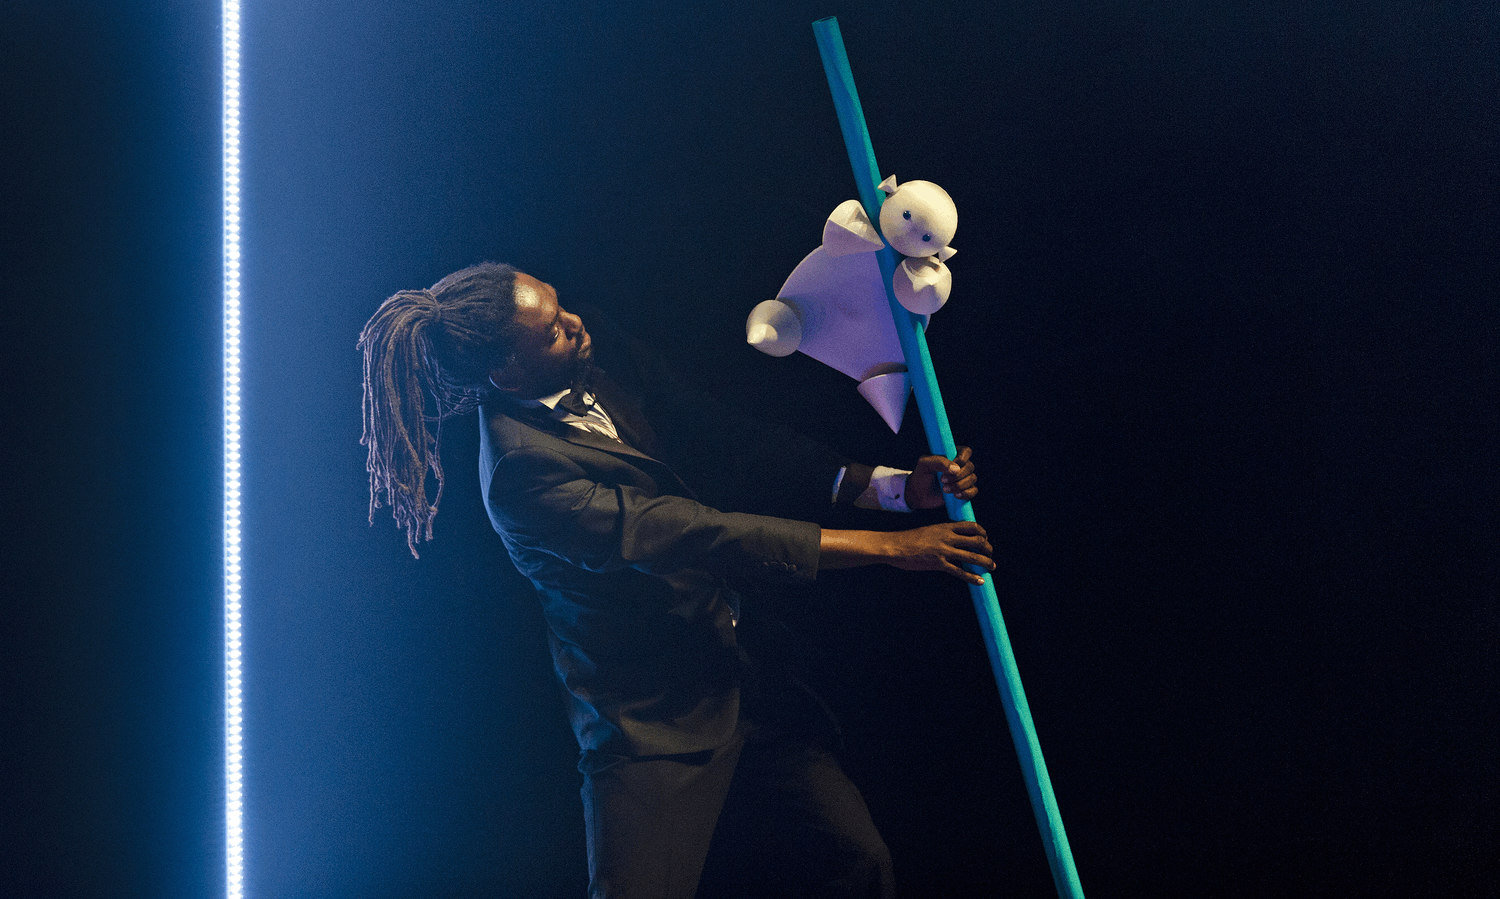 A performer with dreadlocks holds a blue pole at an angle as a tiny white puppet baby slides down it